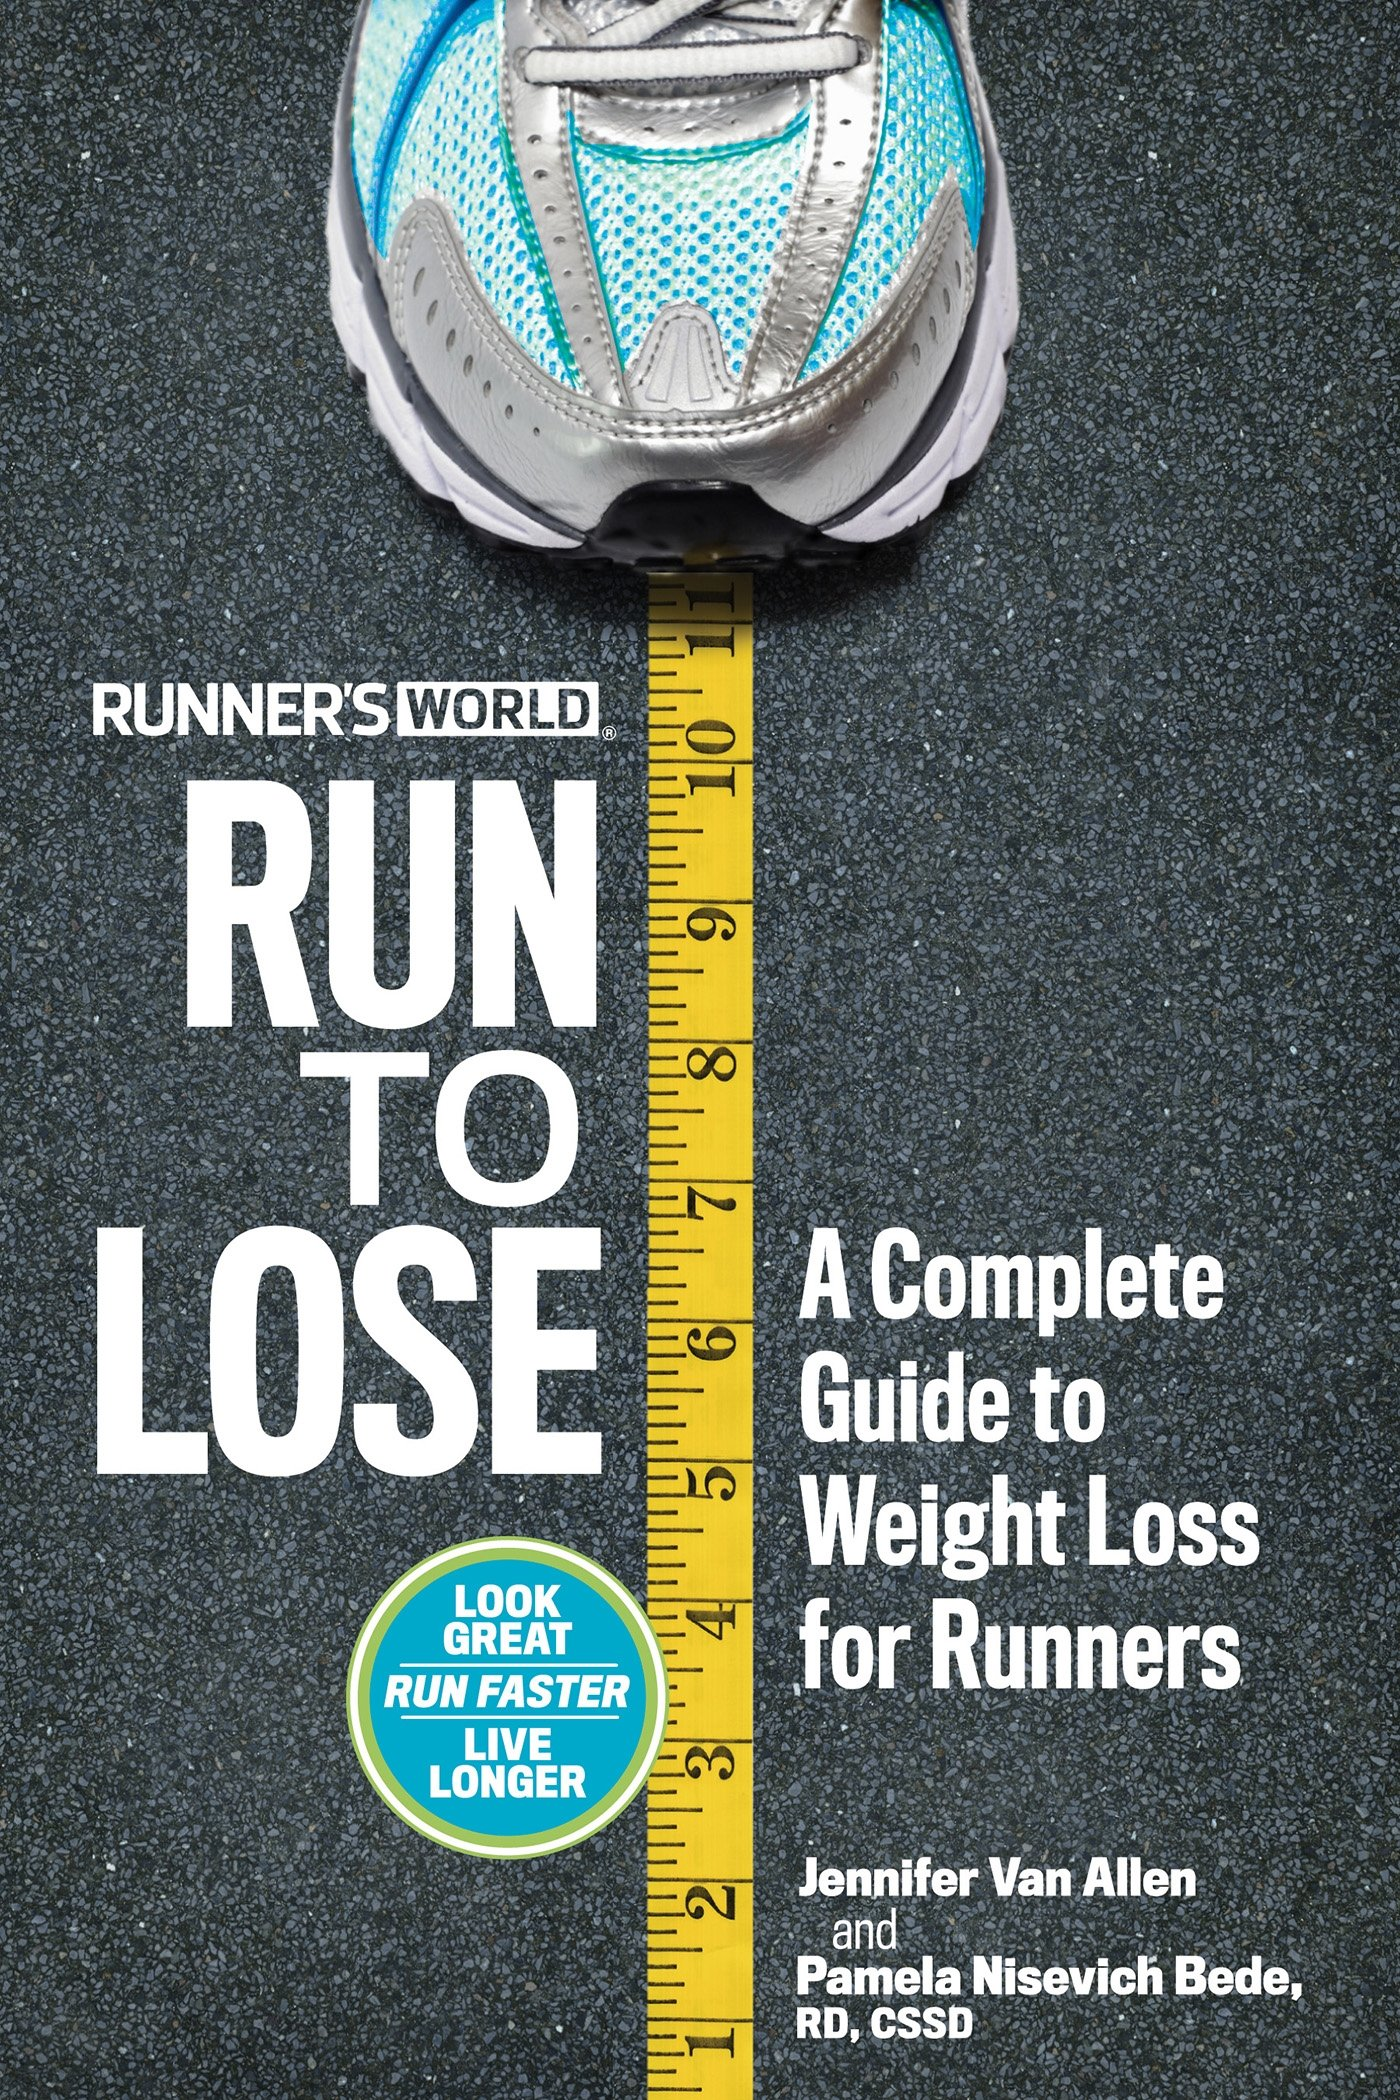 f71e14a30d Runner's World Run to Lose: A Complete Guide to Weight Loss for Runners  Paperback – December 22, 2015